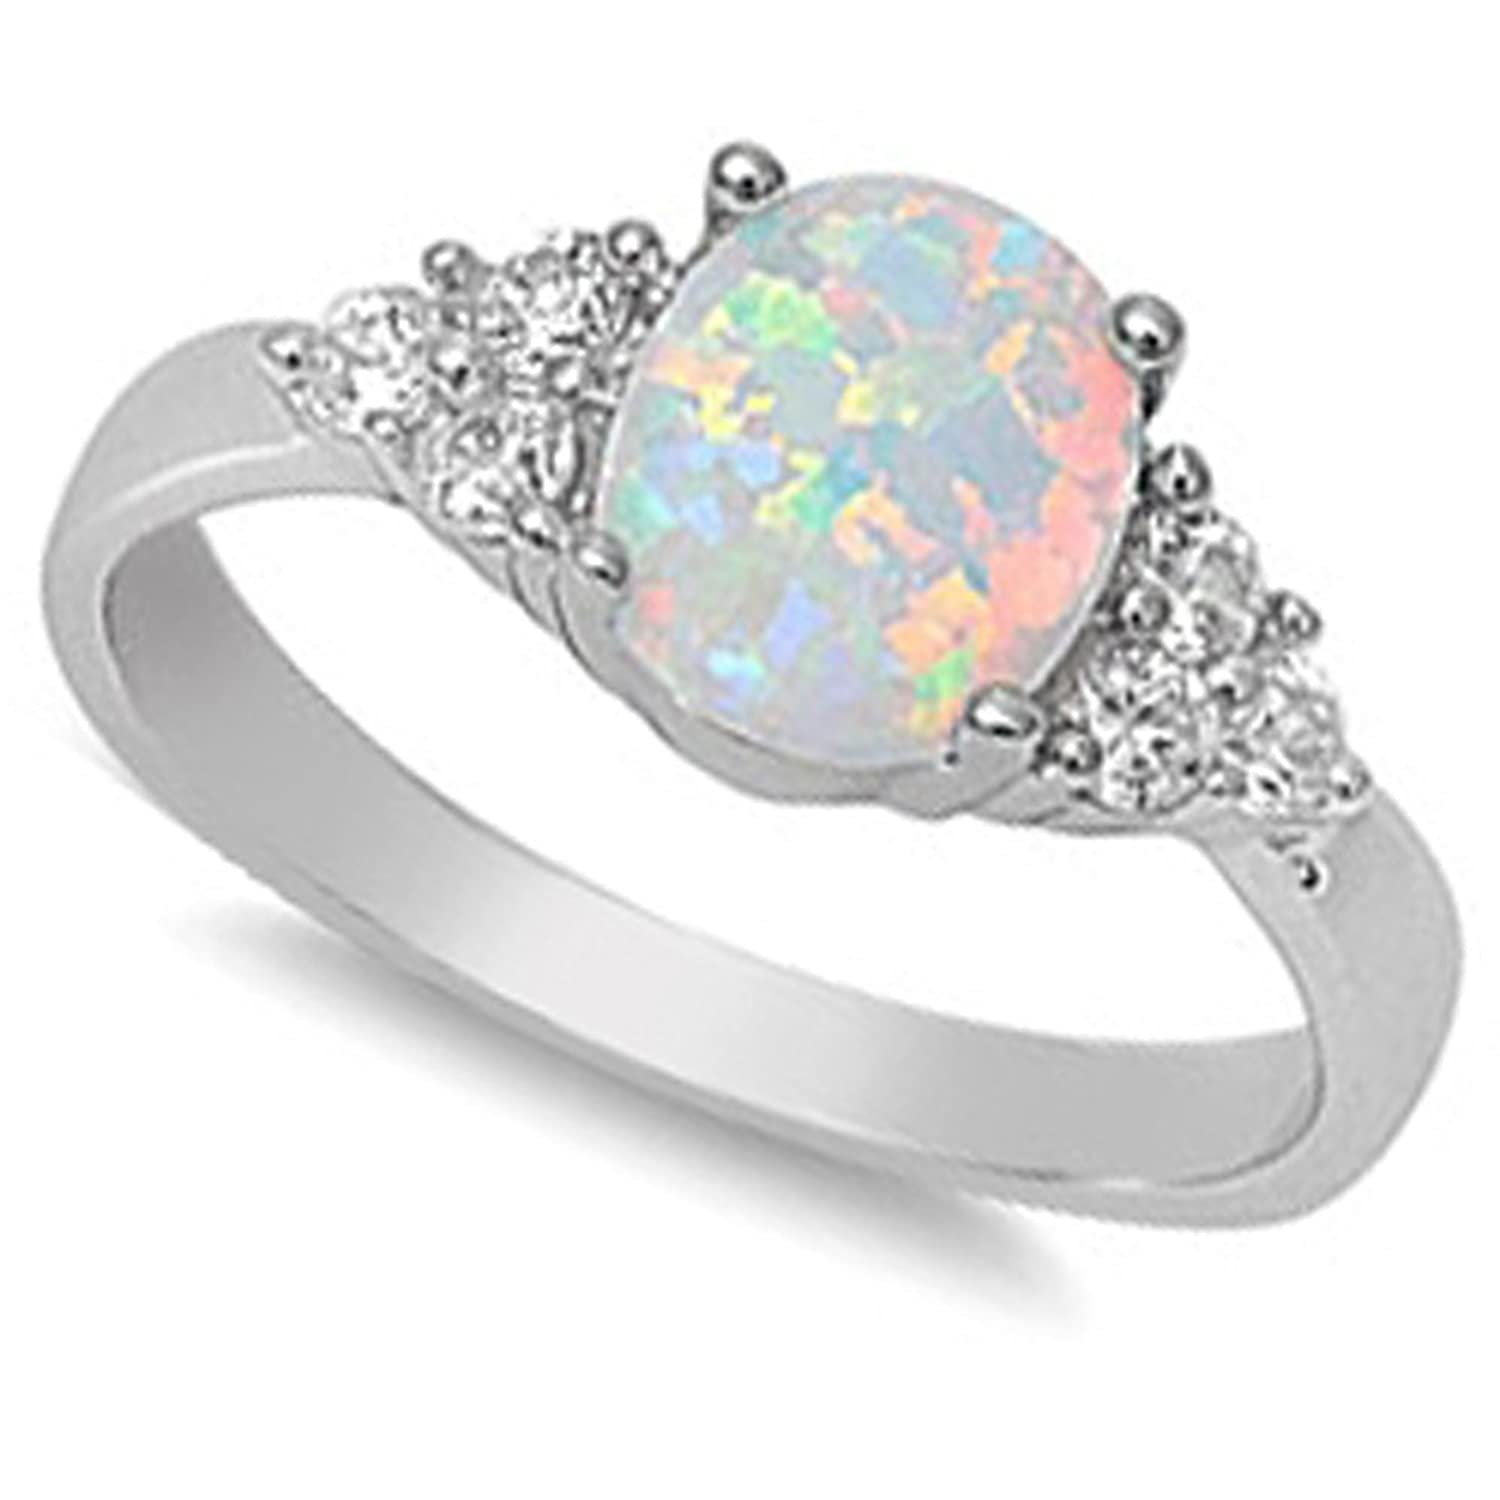 opal ring wedding radiance unique gold rings natural diamond tier sea rose blushing engagement gr